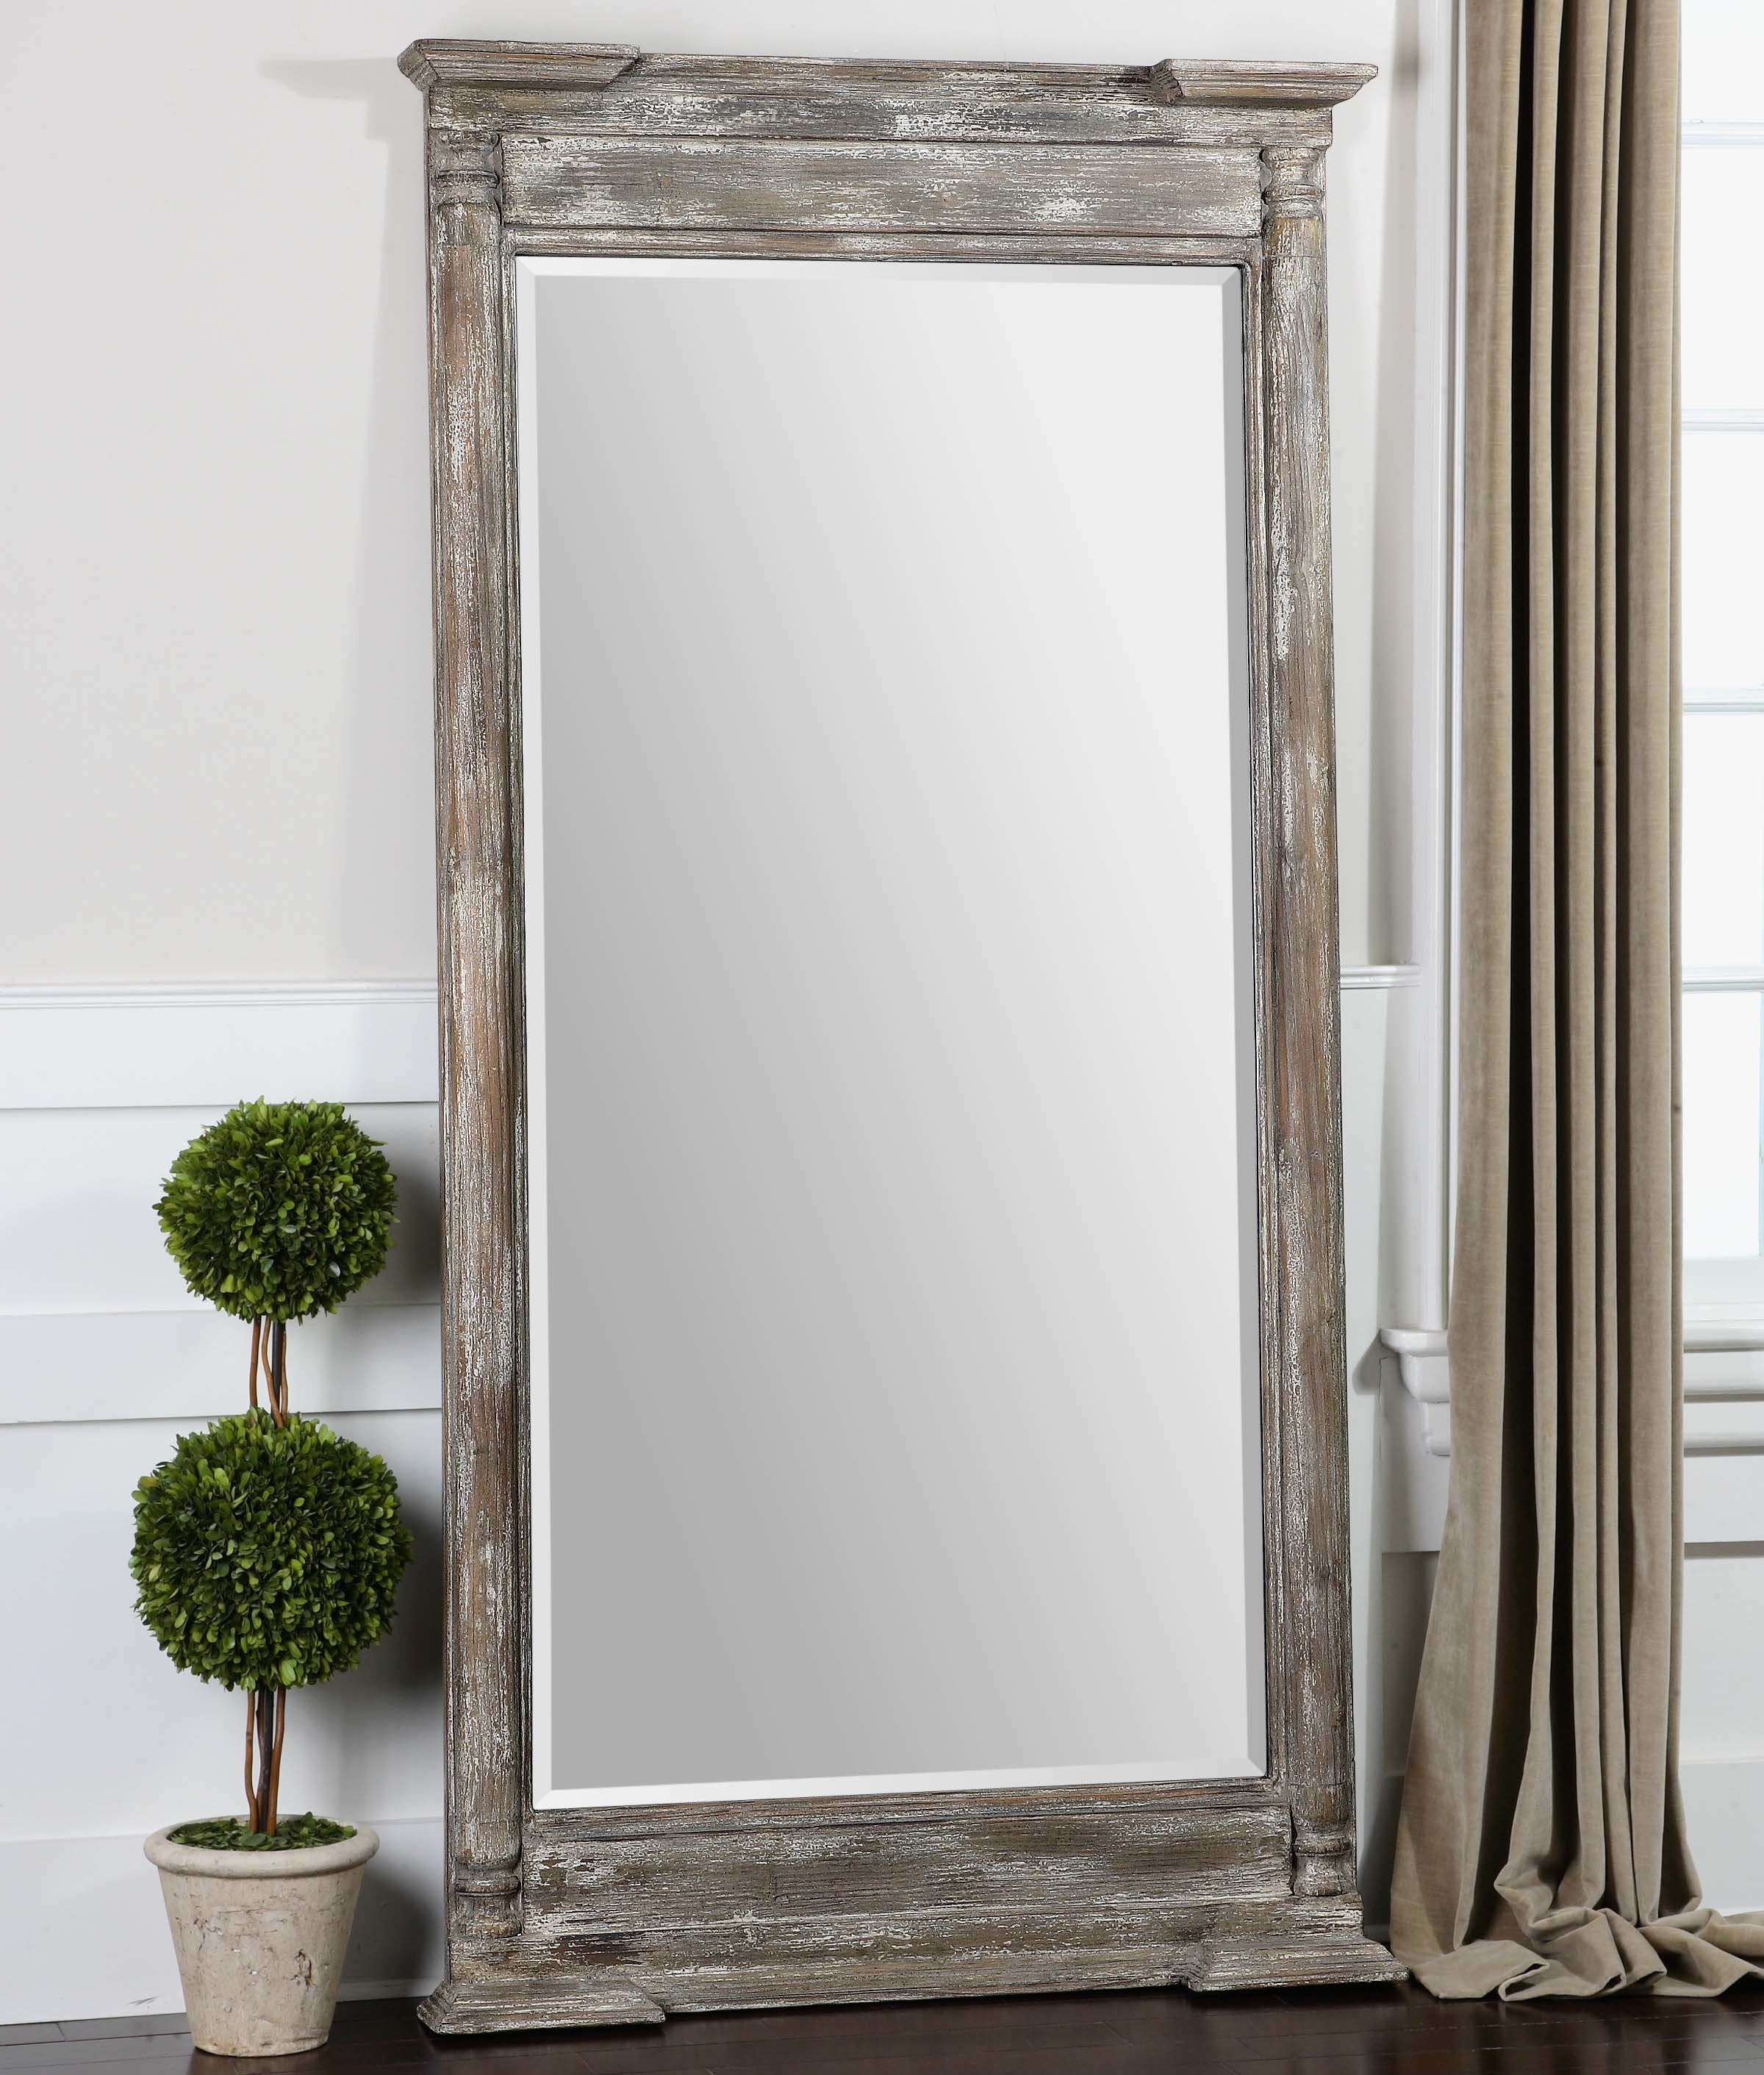 Wooden Wall Mirror Intended For Epinal Shabby Elegance Wall Mirrors (View 30 of 30)